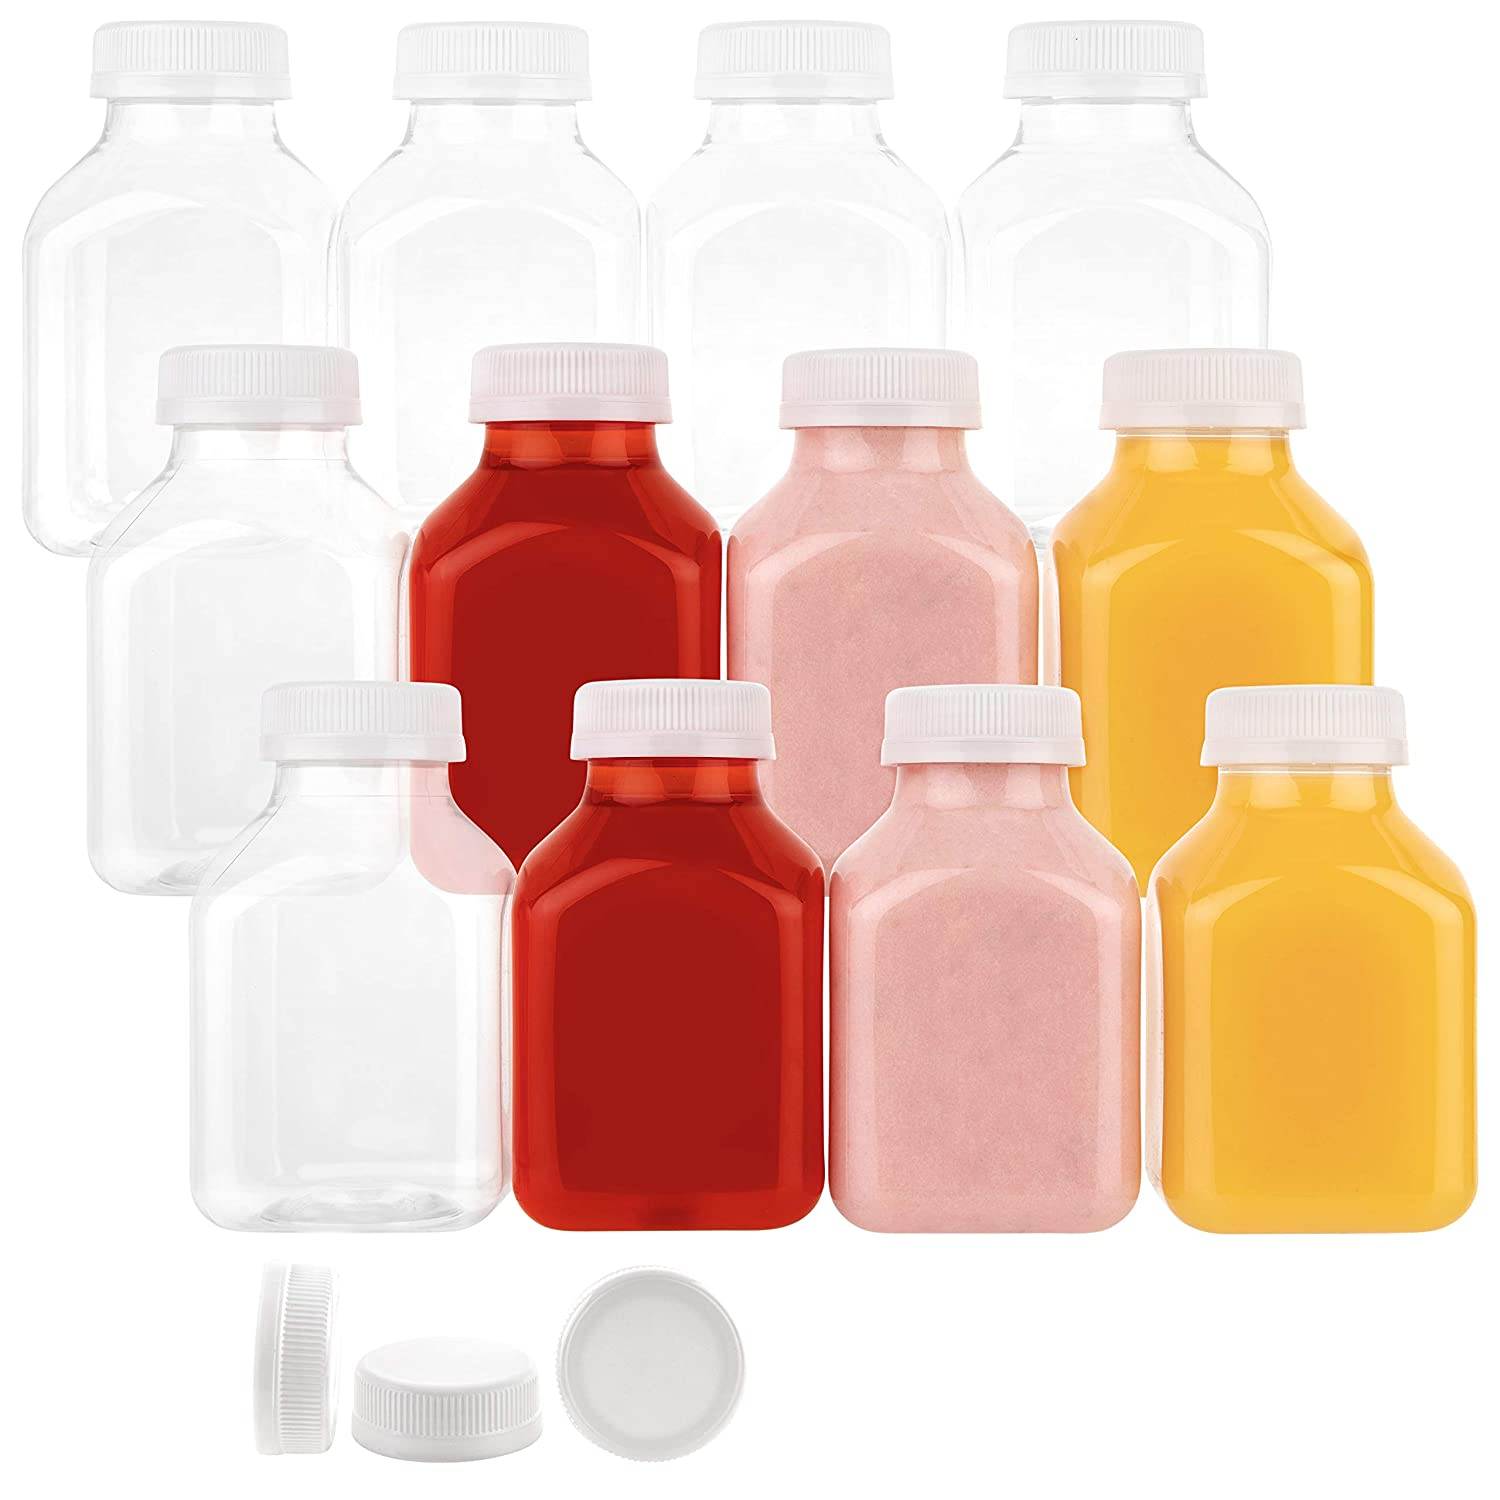 Disposable Plastic Juice Bottles-8 Oz with Lids | 12 Pack | for Water, Orange Apple Lemon Juicing, Smoothies, Milk, Reusable, BPA Free, Tamper-Proof Caps, Catering, Takeout